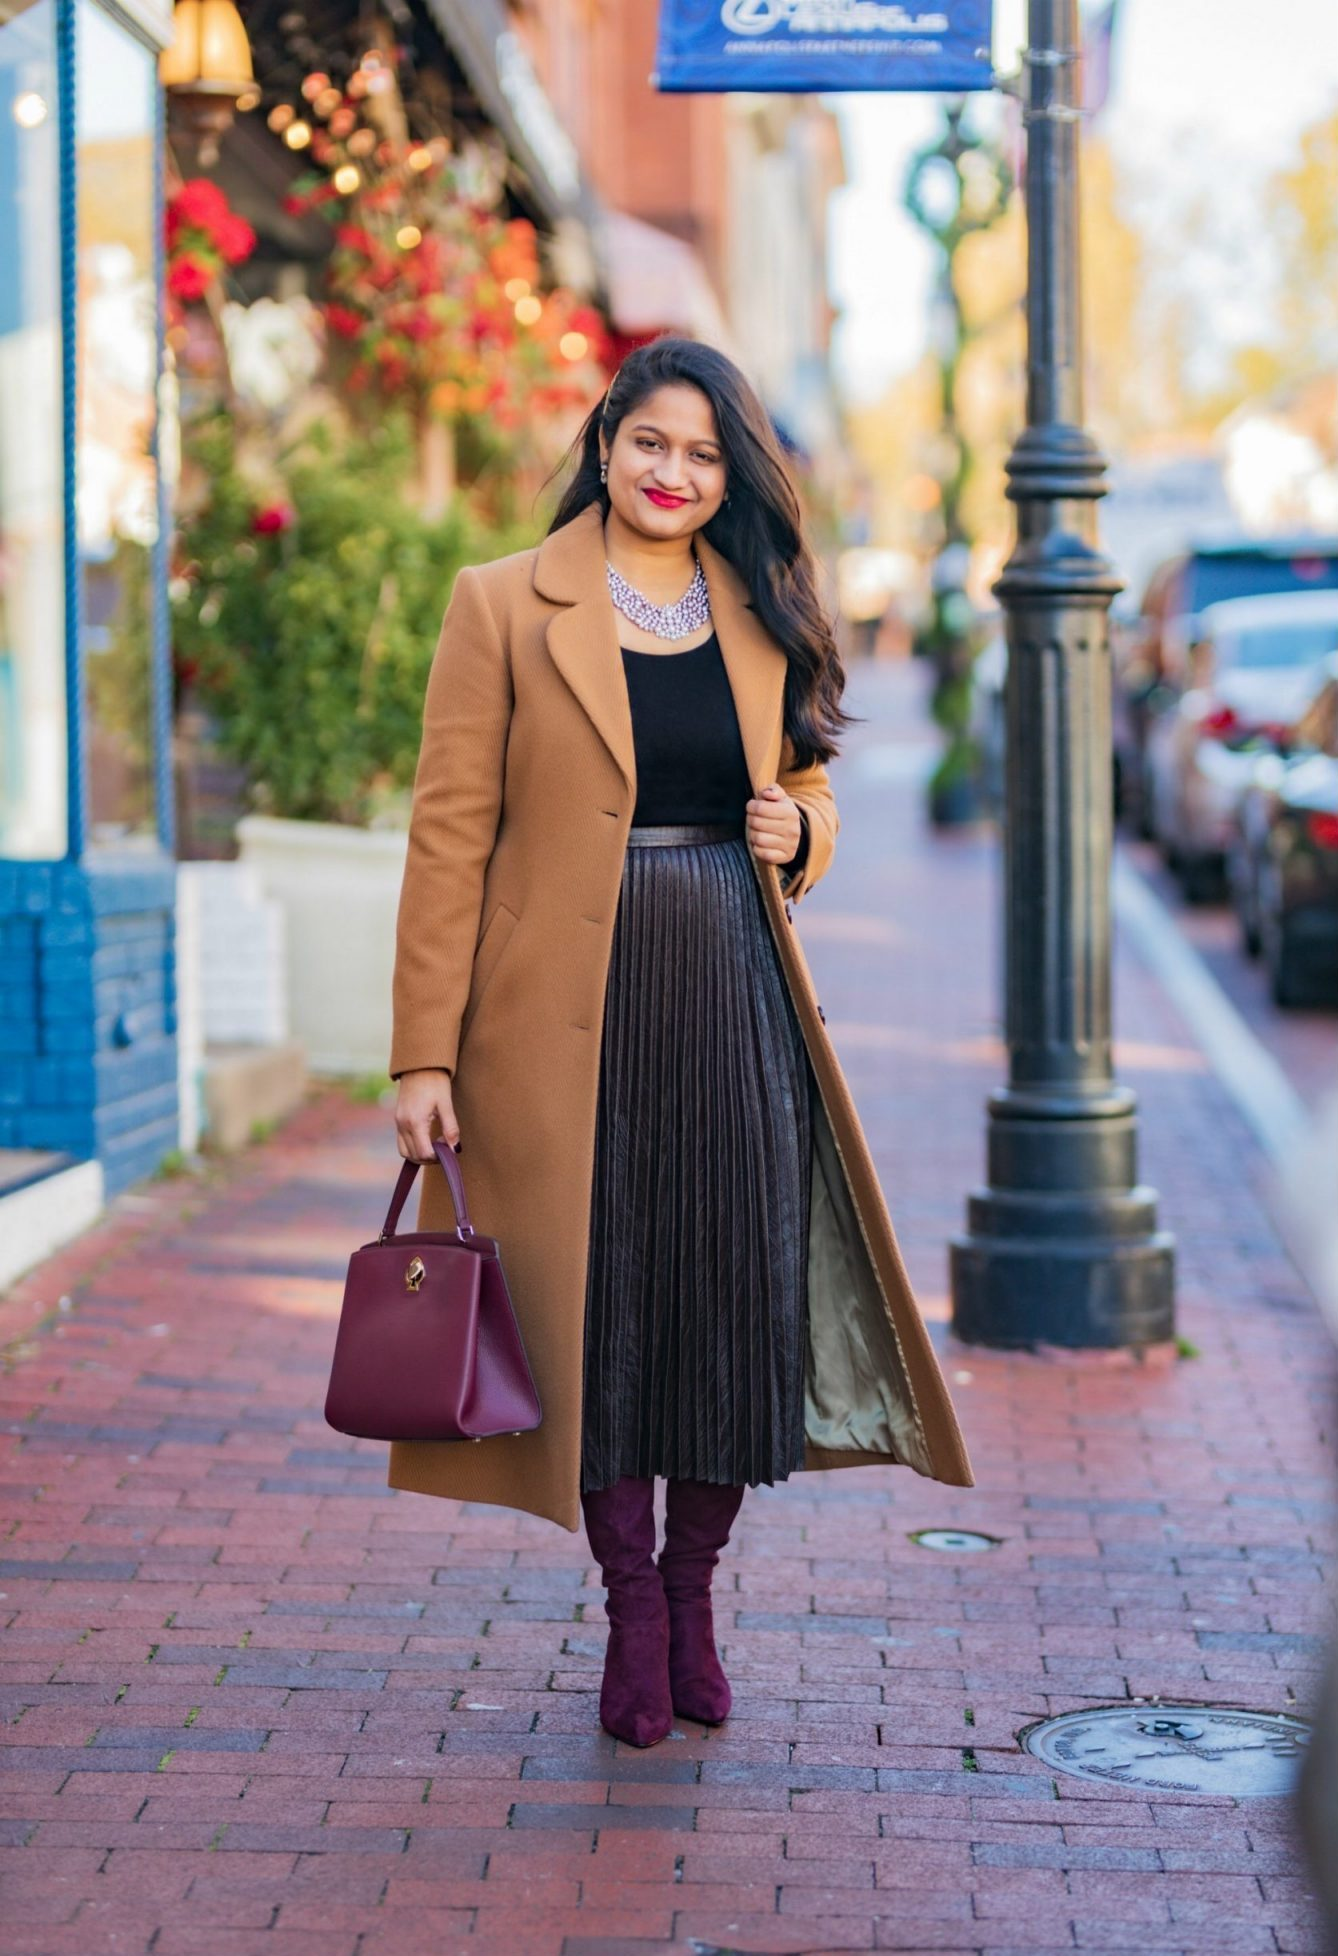 wearing and other stories A-Line Wool Blend Belted Coat, Madewell Puff-Sleeve Scoopneck Top,Atlantic-Pacific Pleated Croc Faux Leather Midi Skirt, burgundy knee high boots1